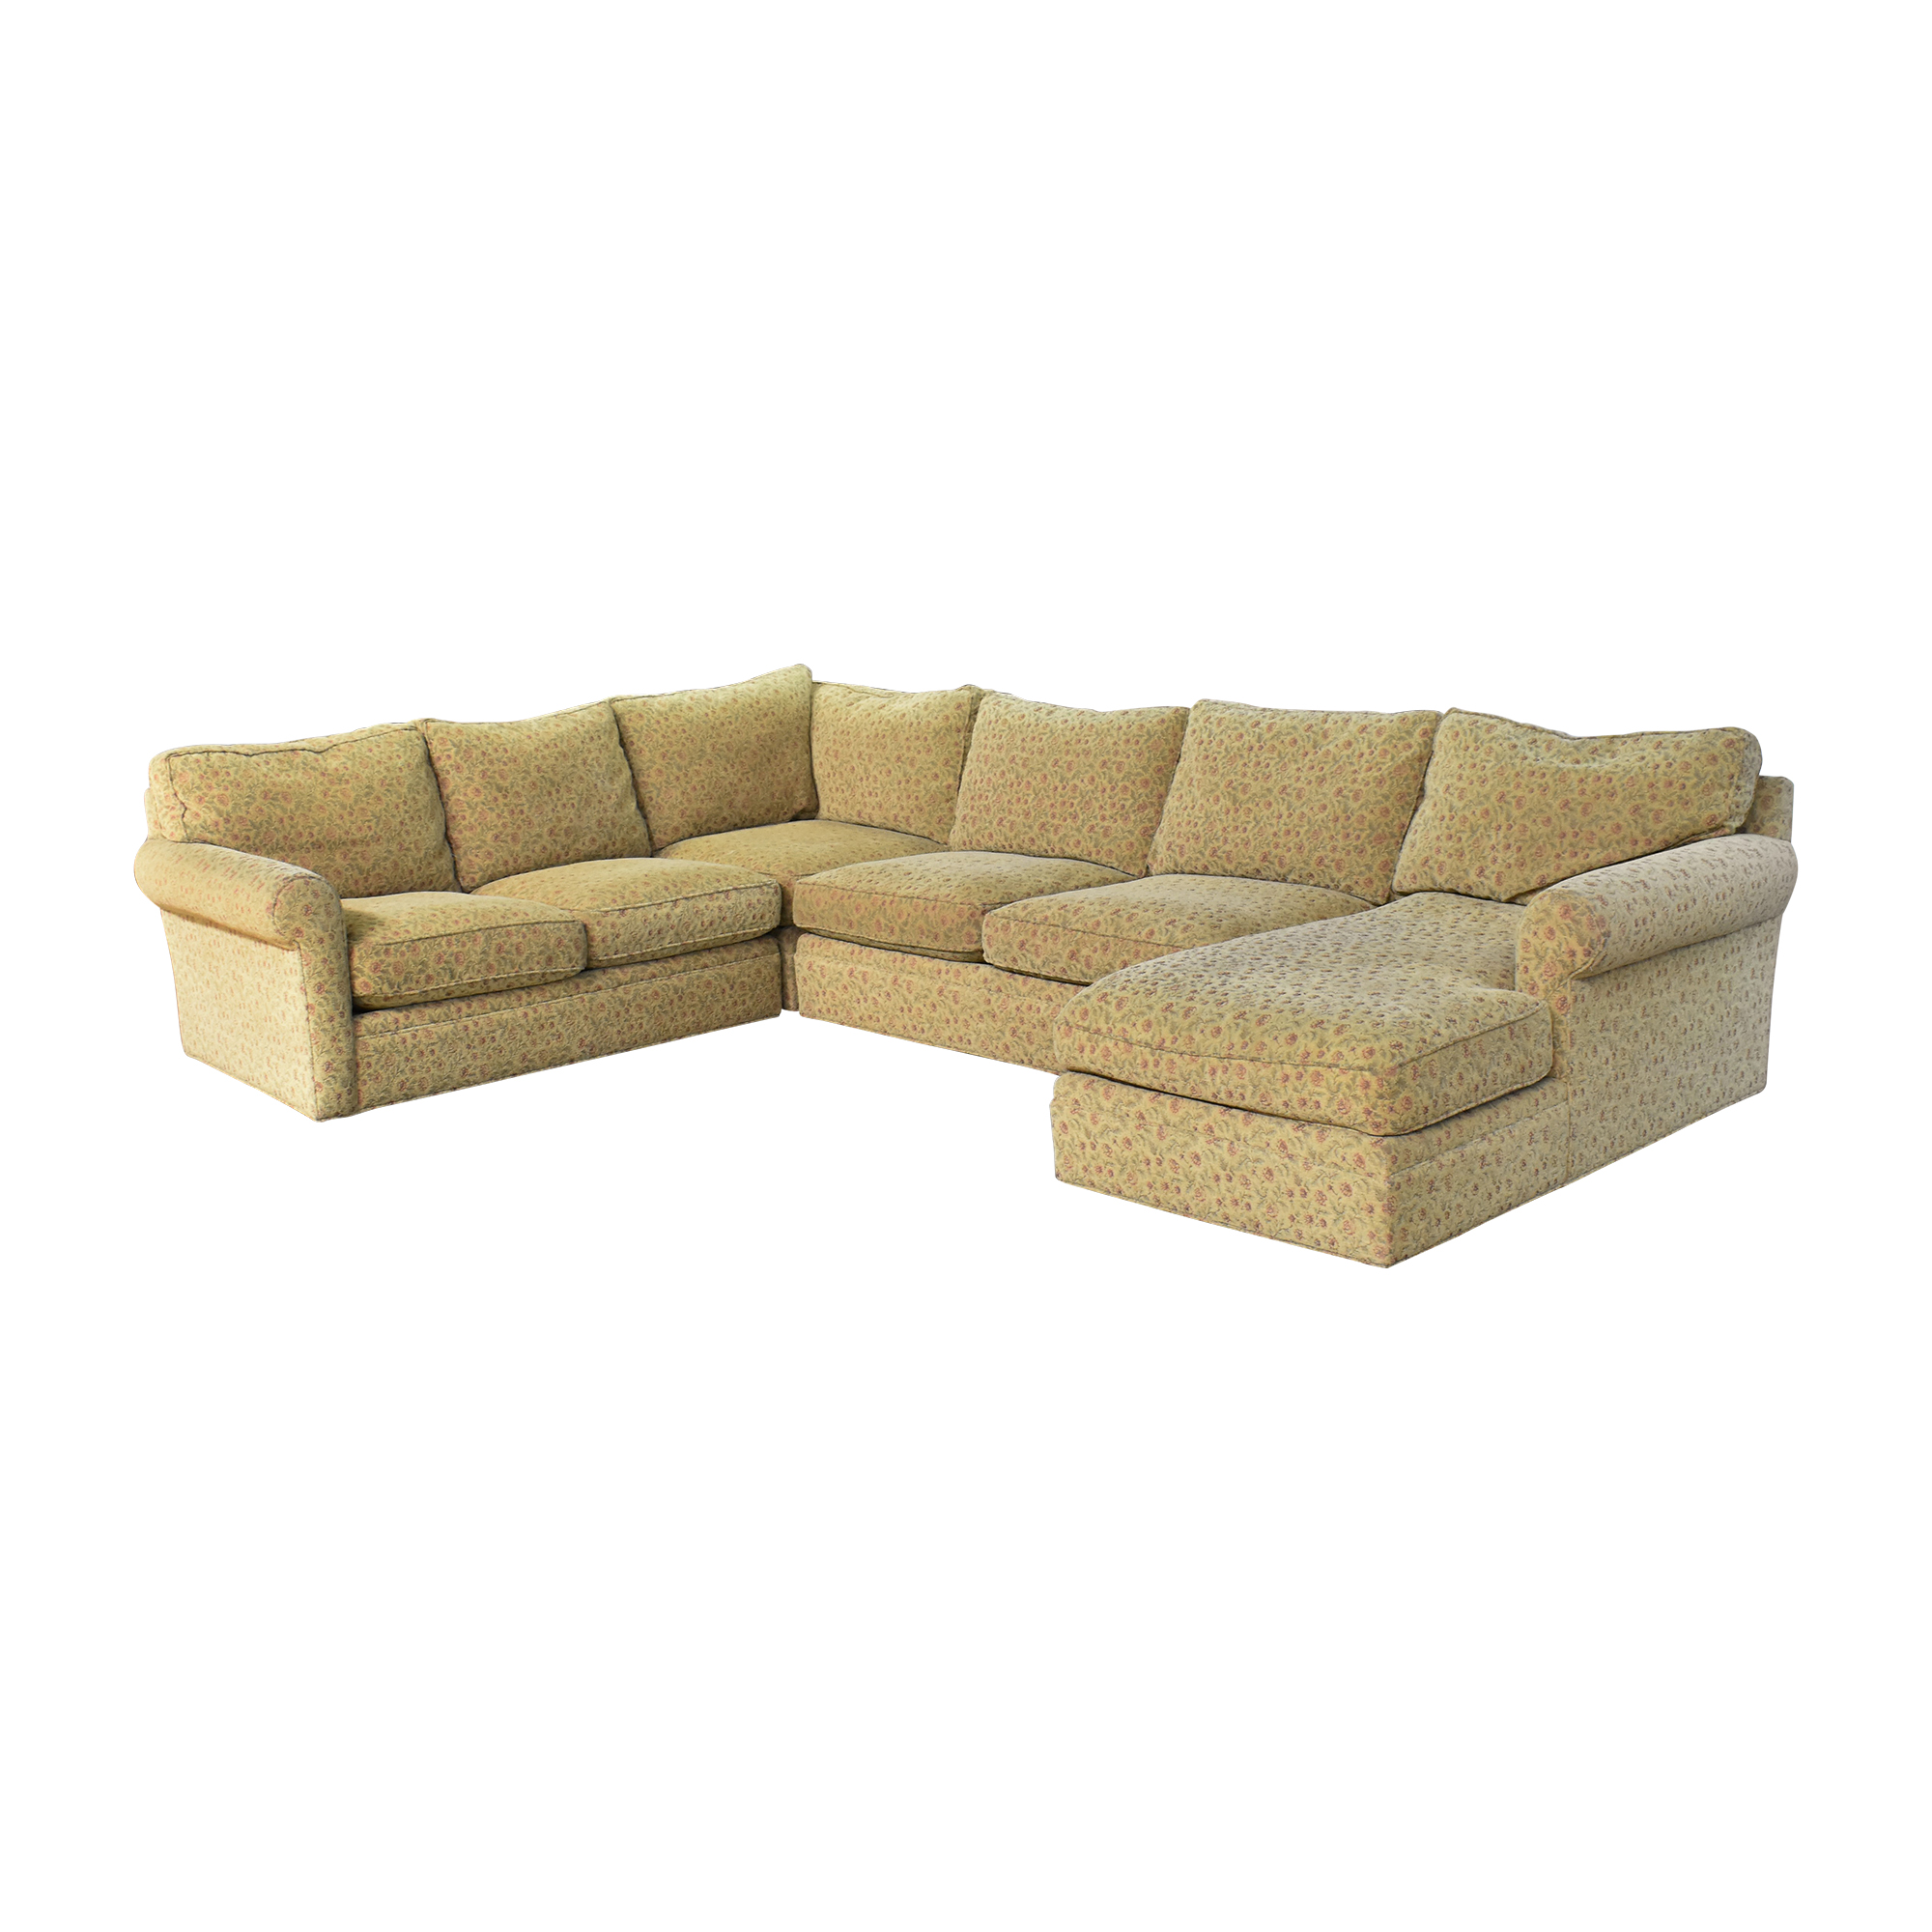 Crate & Barrel Crate & Barrel Huntley Chaise U Sectional Sofa coupon